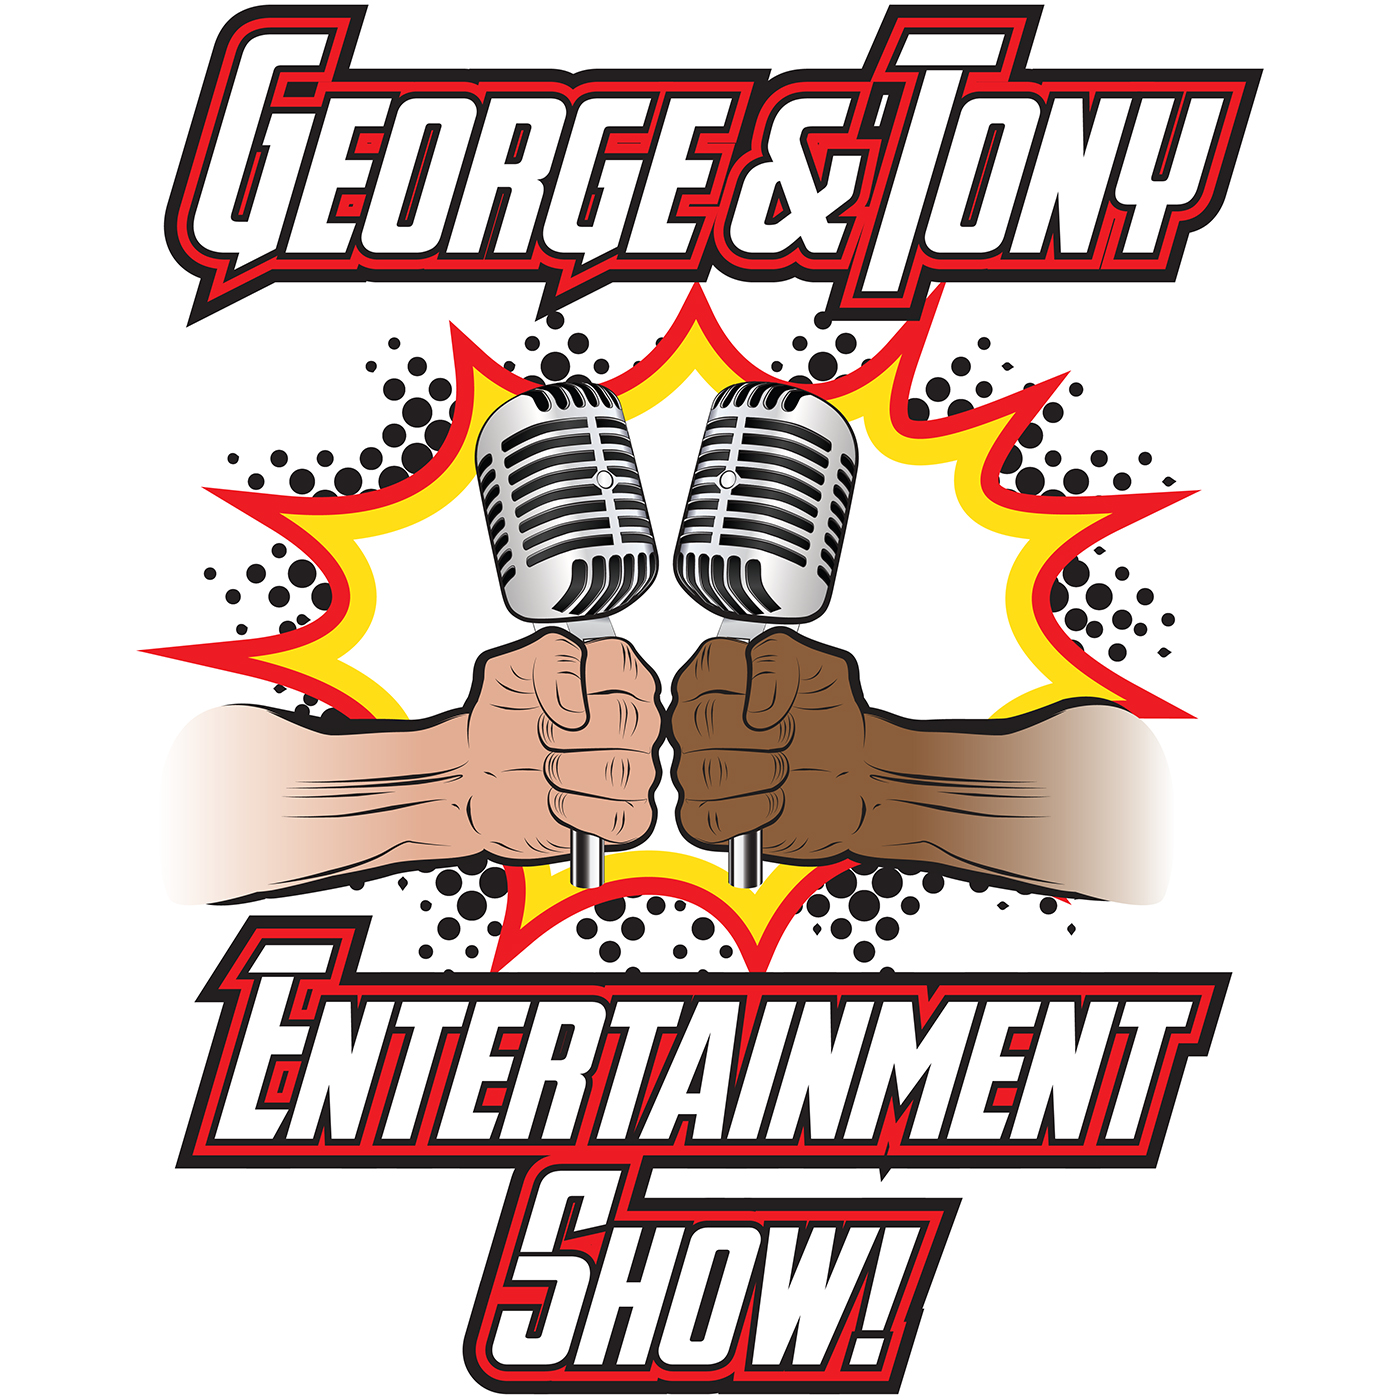 George and Tony Entertainment Show #20